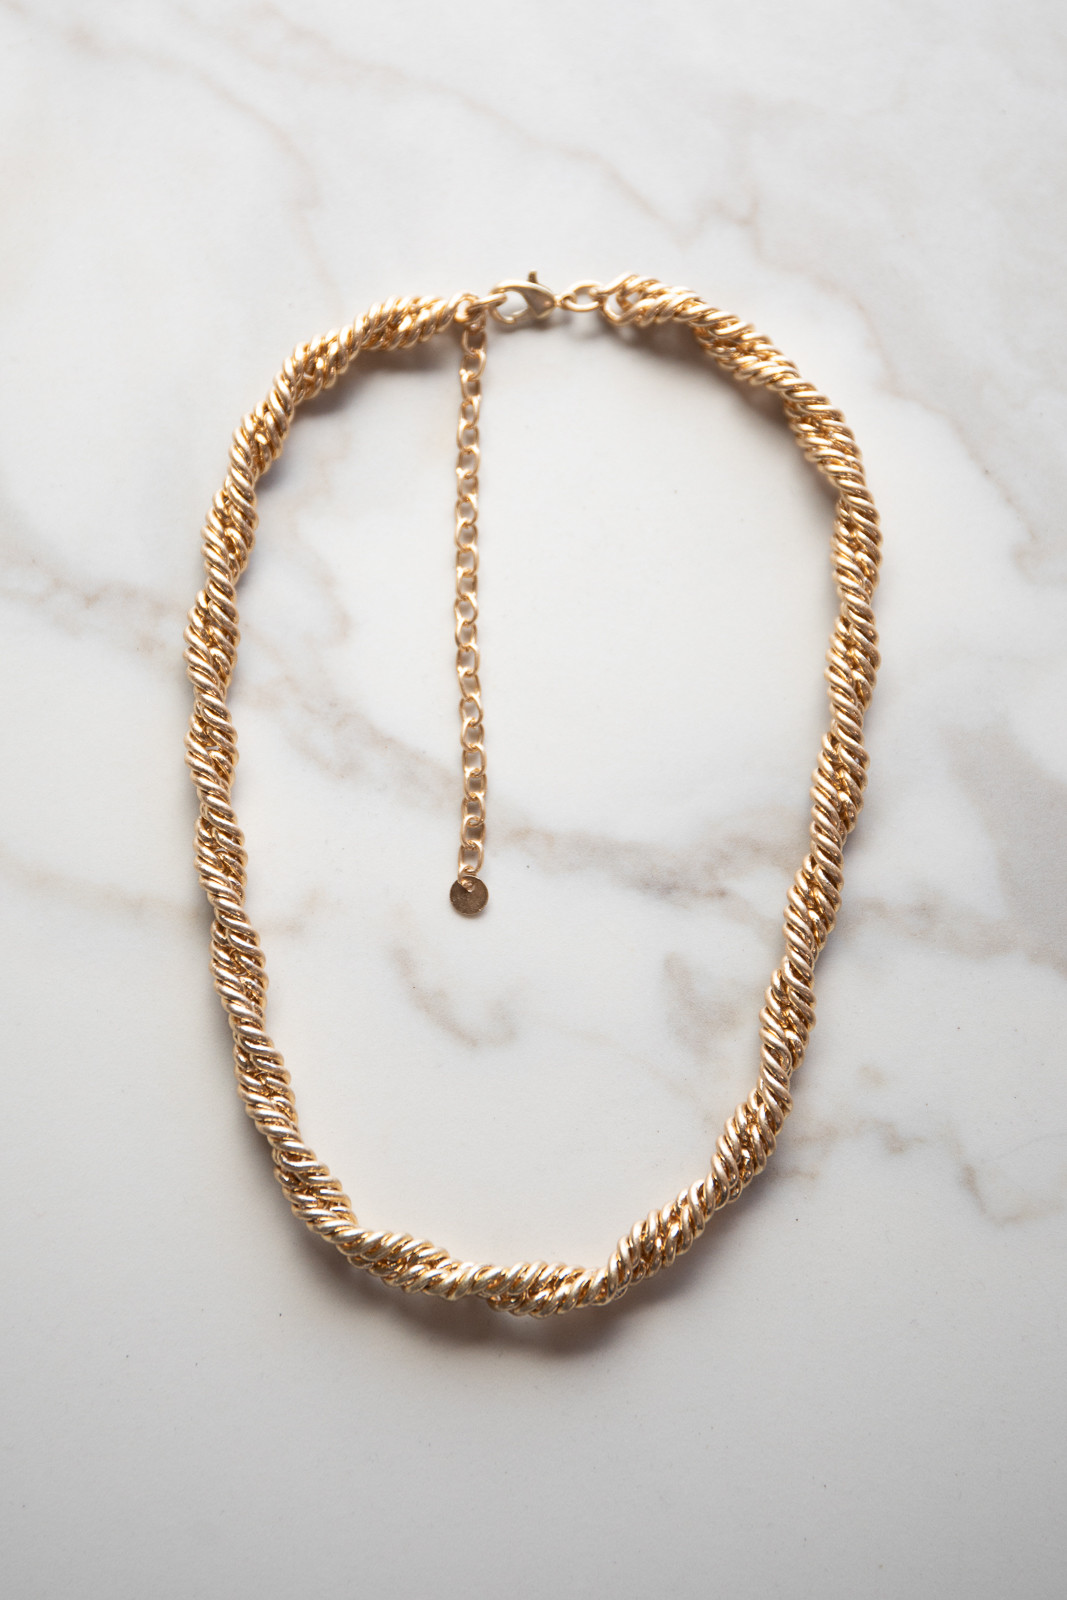 Brushed Gold Woven Twist Chain Necklace